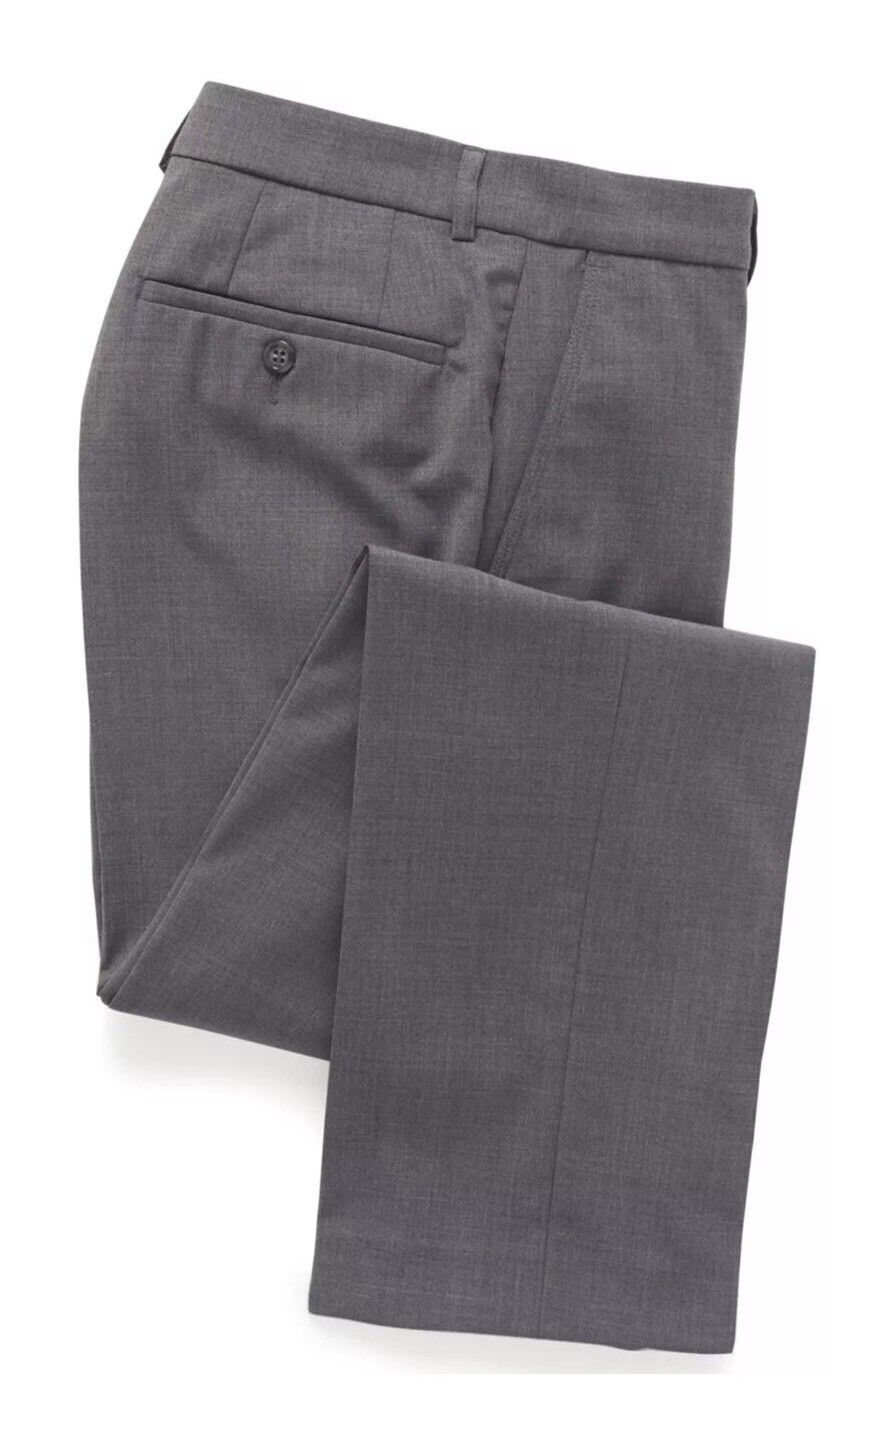 Brook Taverner Avalino Formal Trousers  Light Grey  Size  R   36R Available